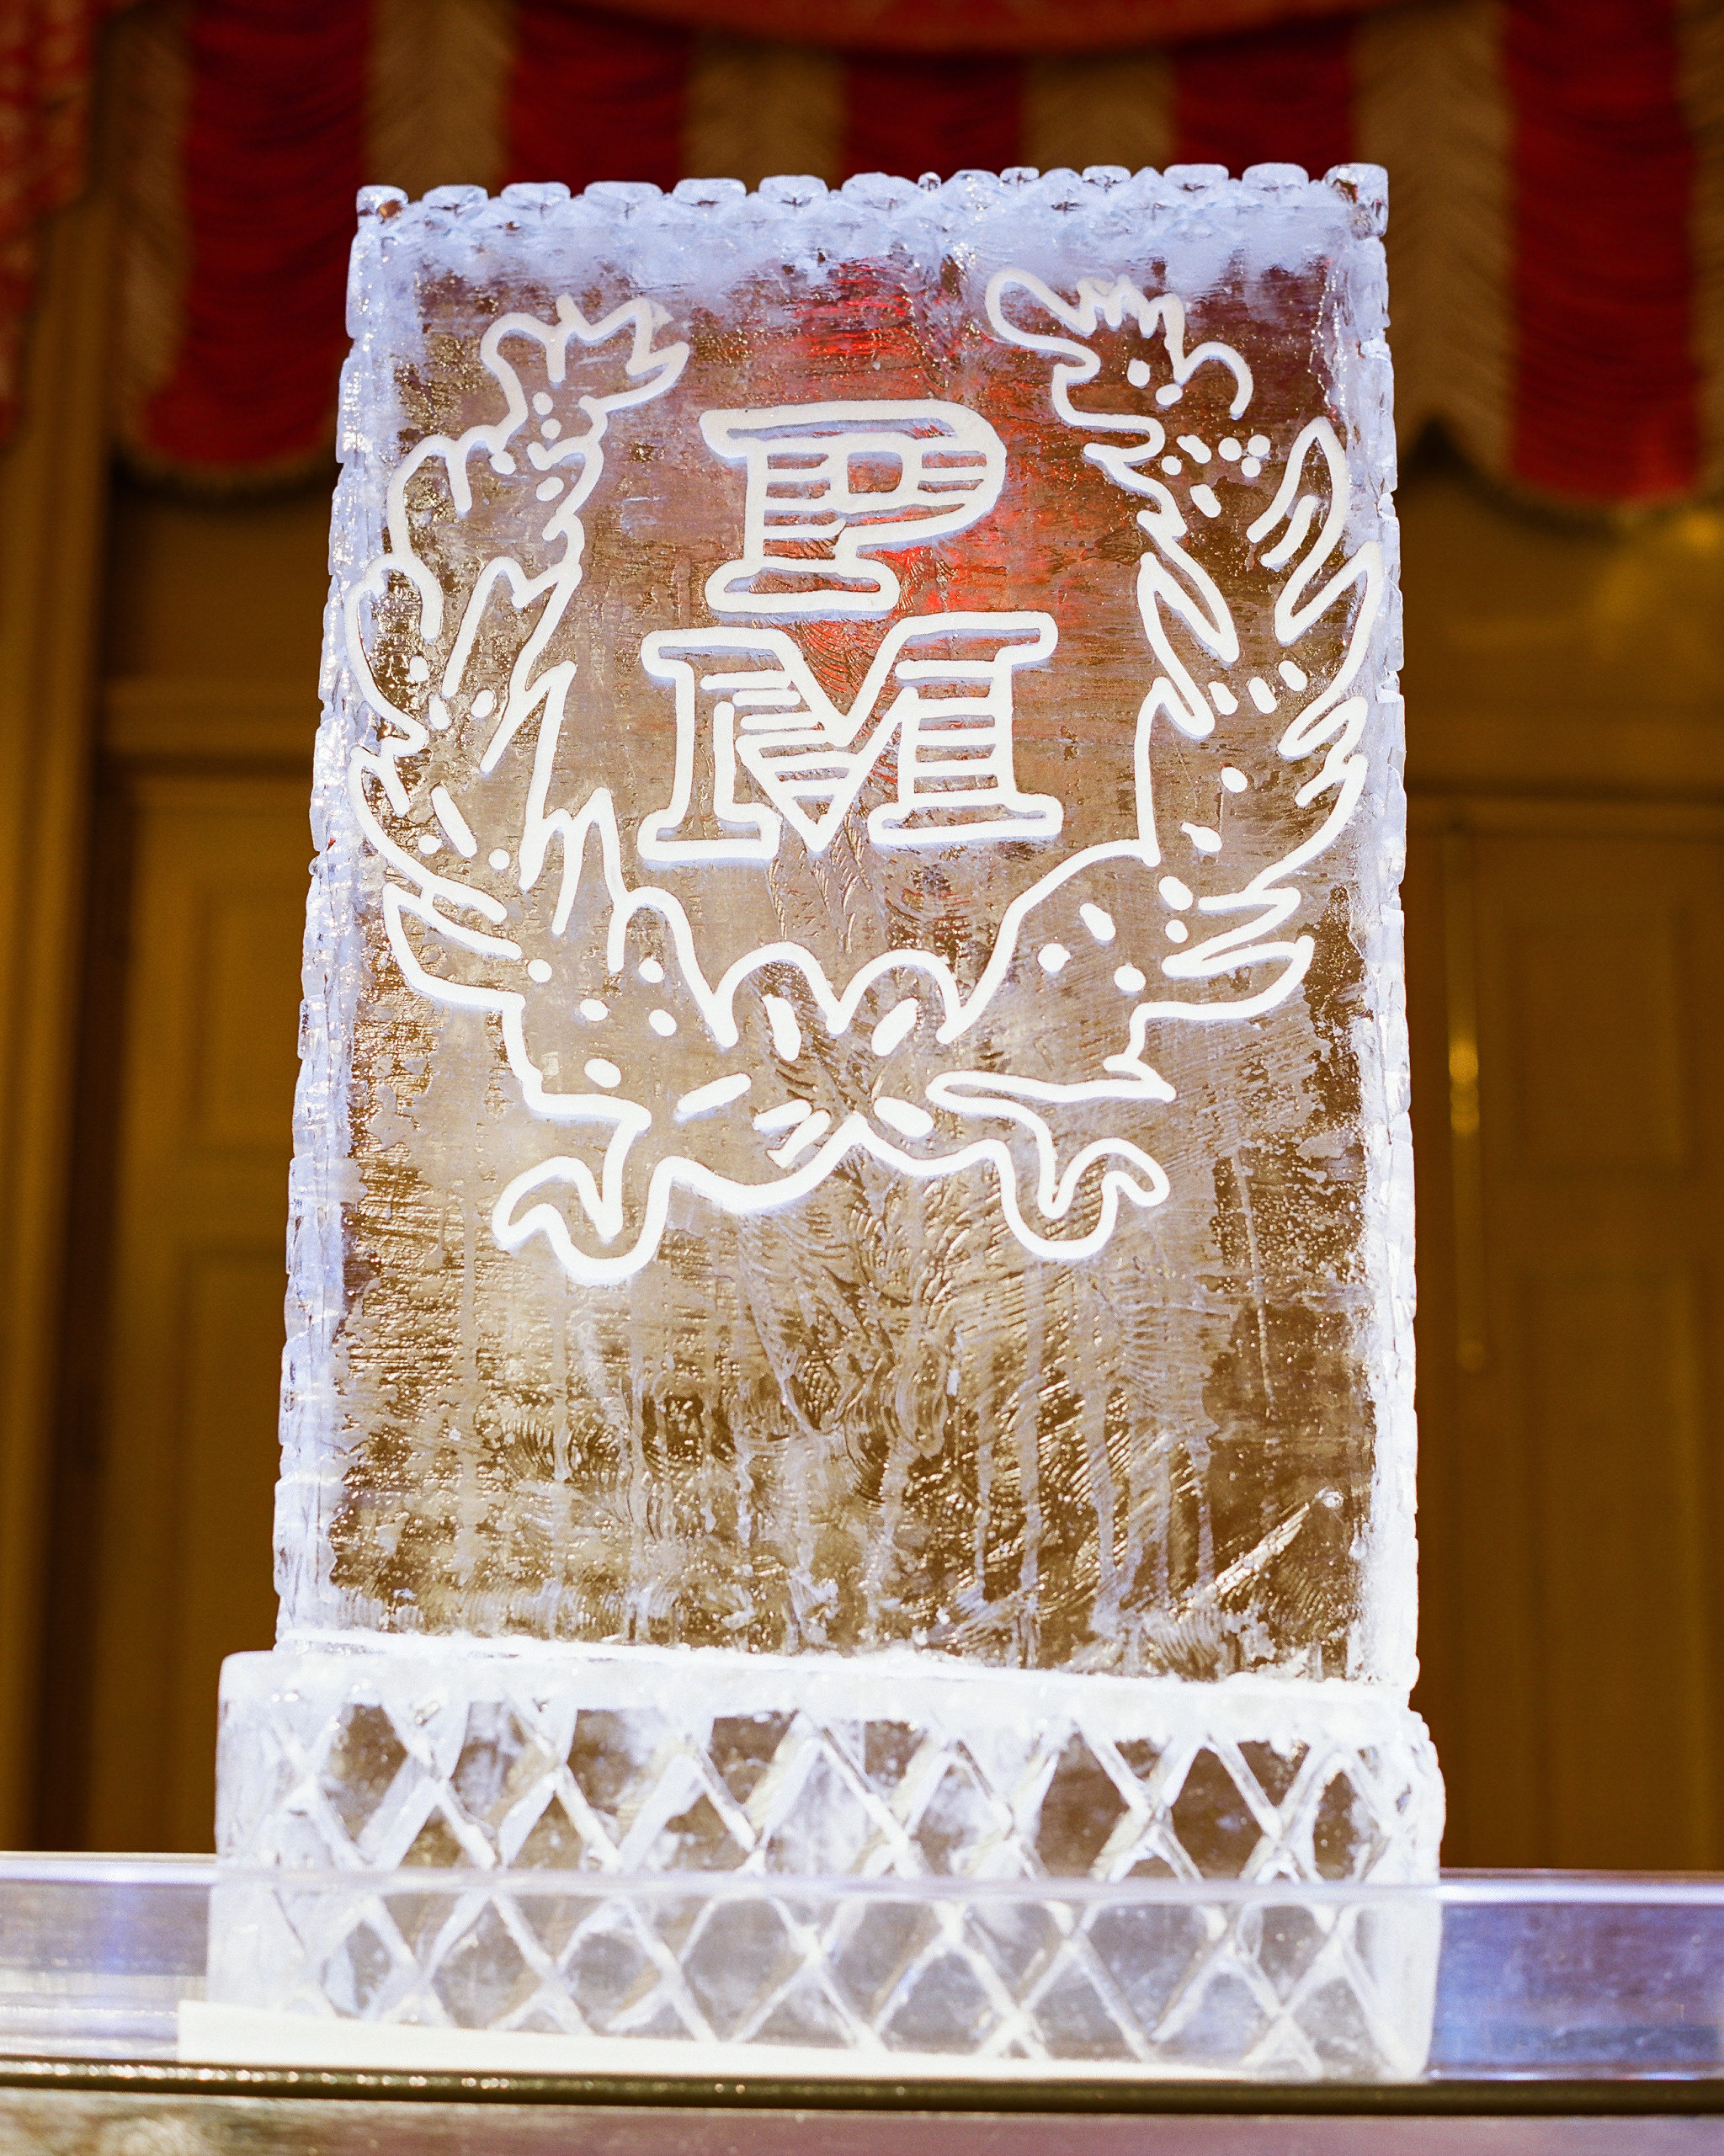 An Ice Sculpture